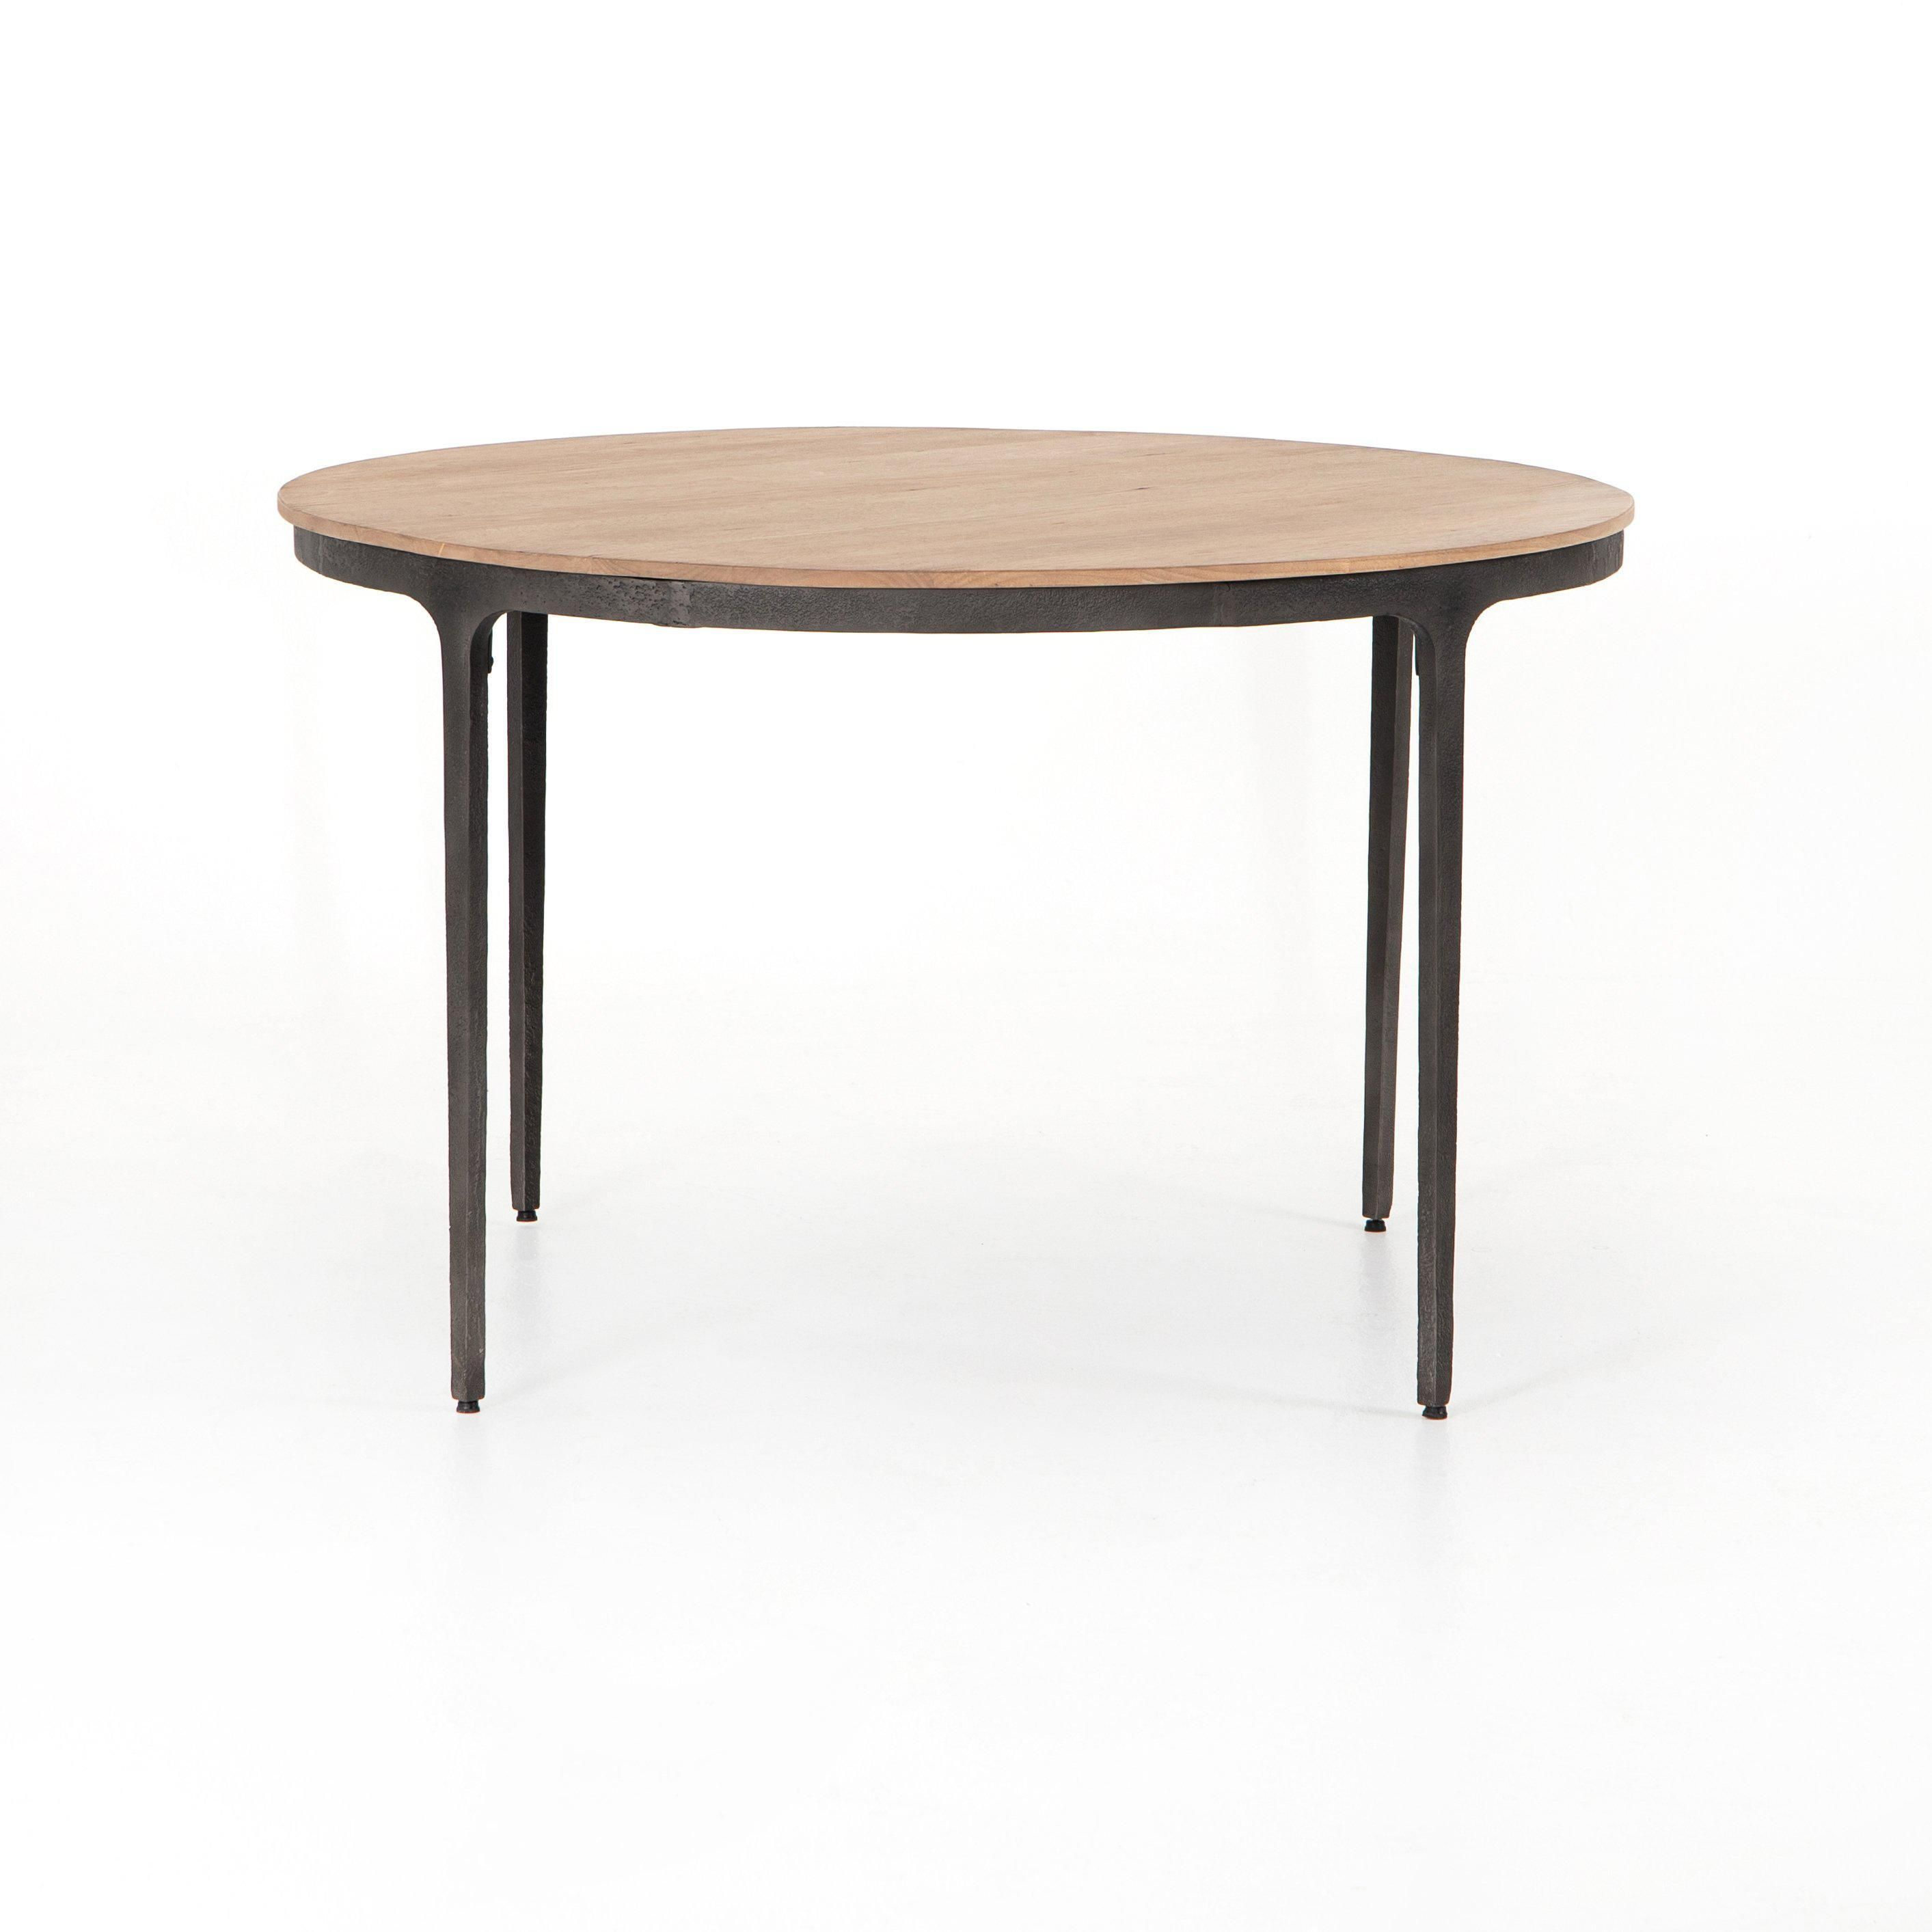 Clifton 48 In 2021 Round Dining Table 48 Round Dining Table Dining Table [ 2827 x 2827 Pixel ]